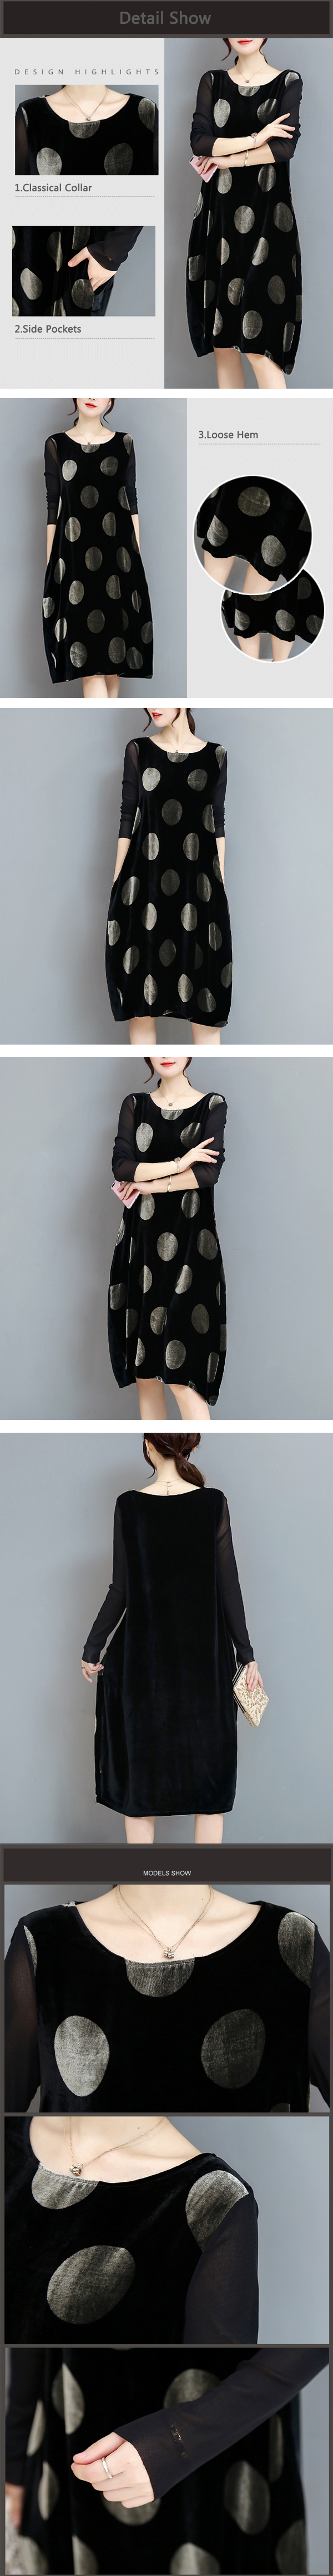 Elegant Women Long Sleeve Polka Dot Velvet Loose Dresses